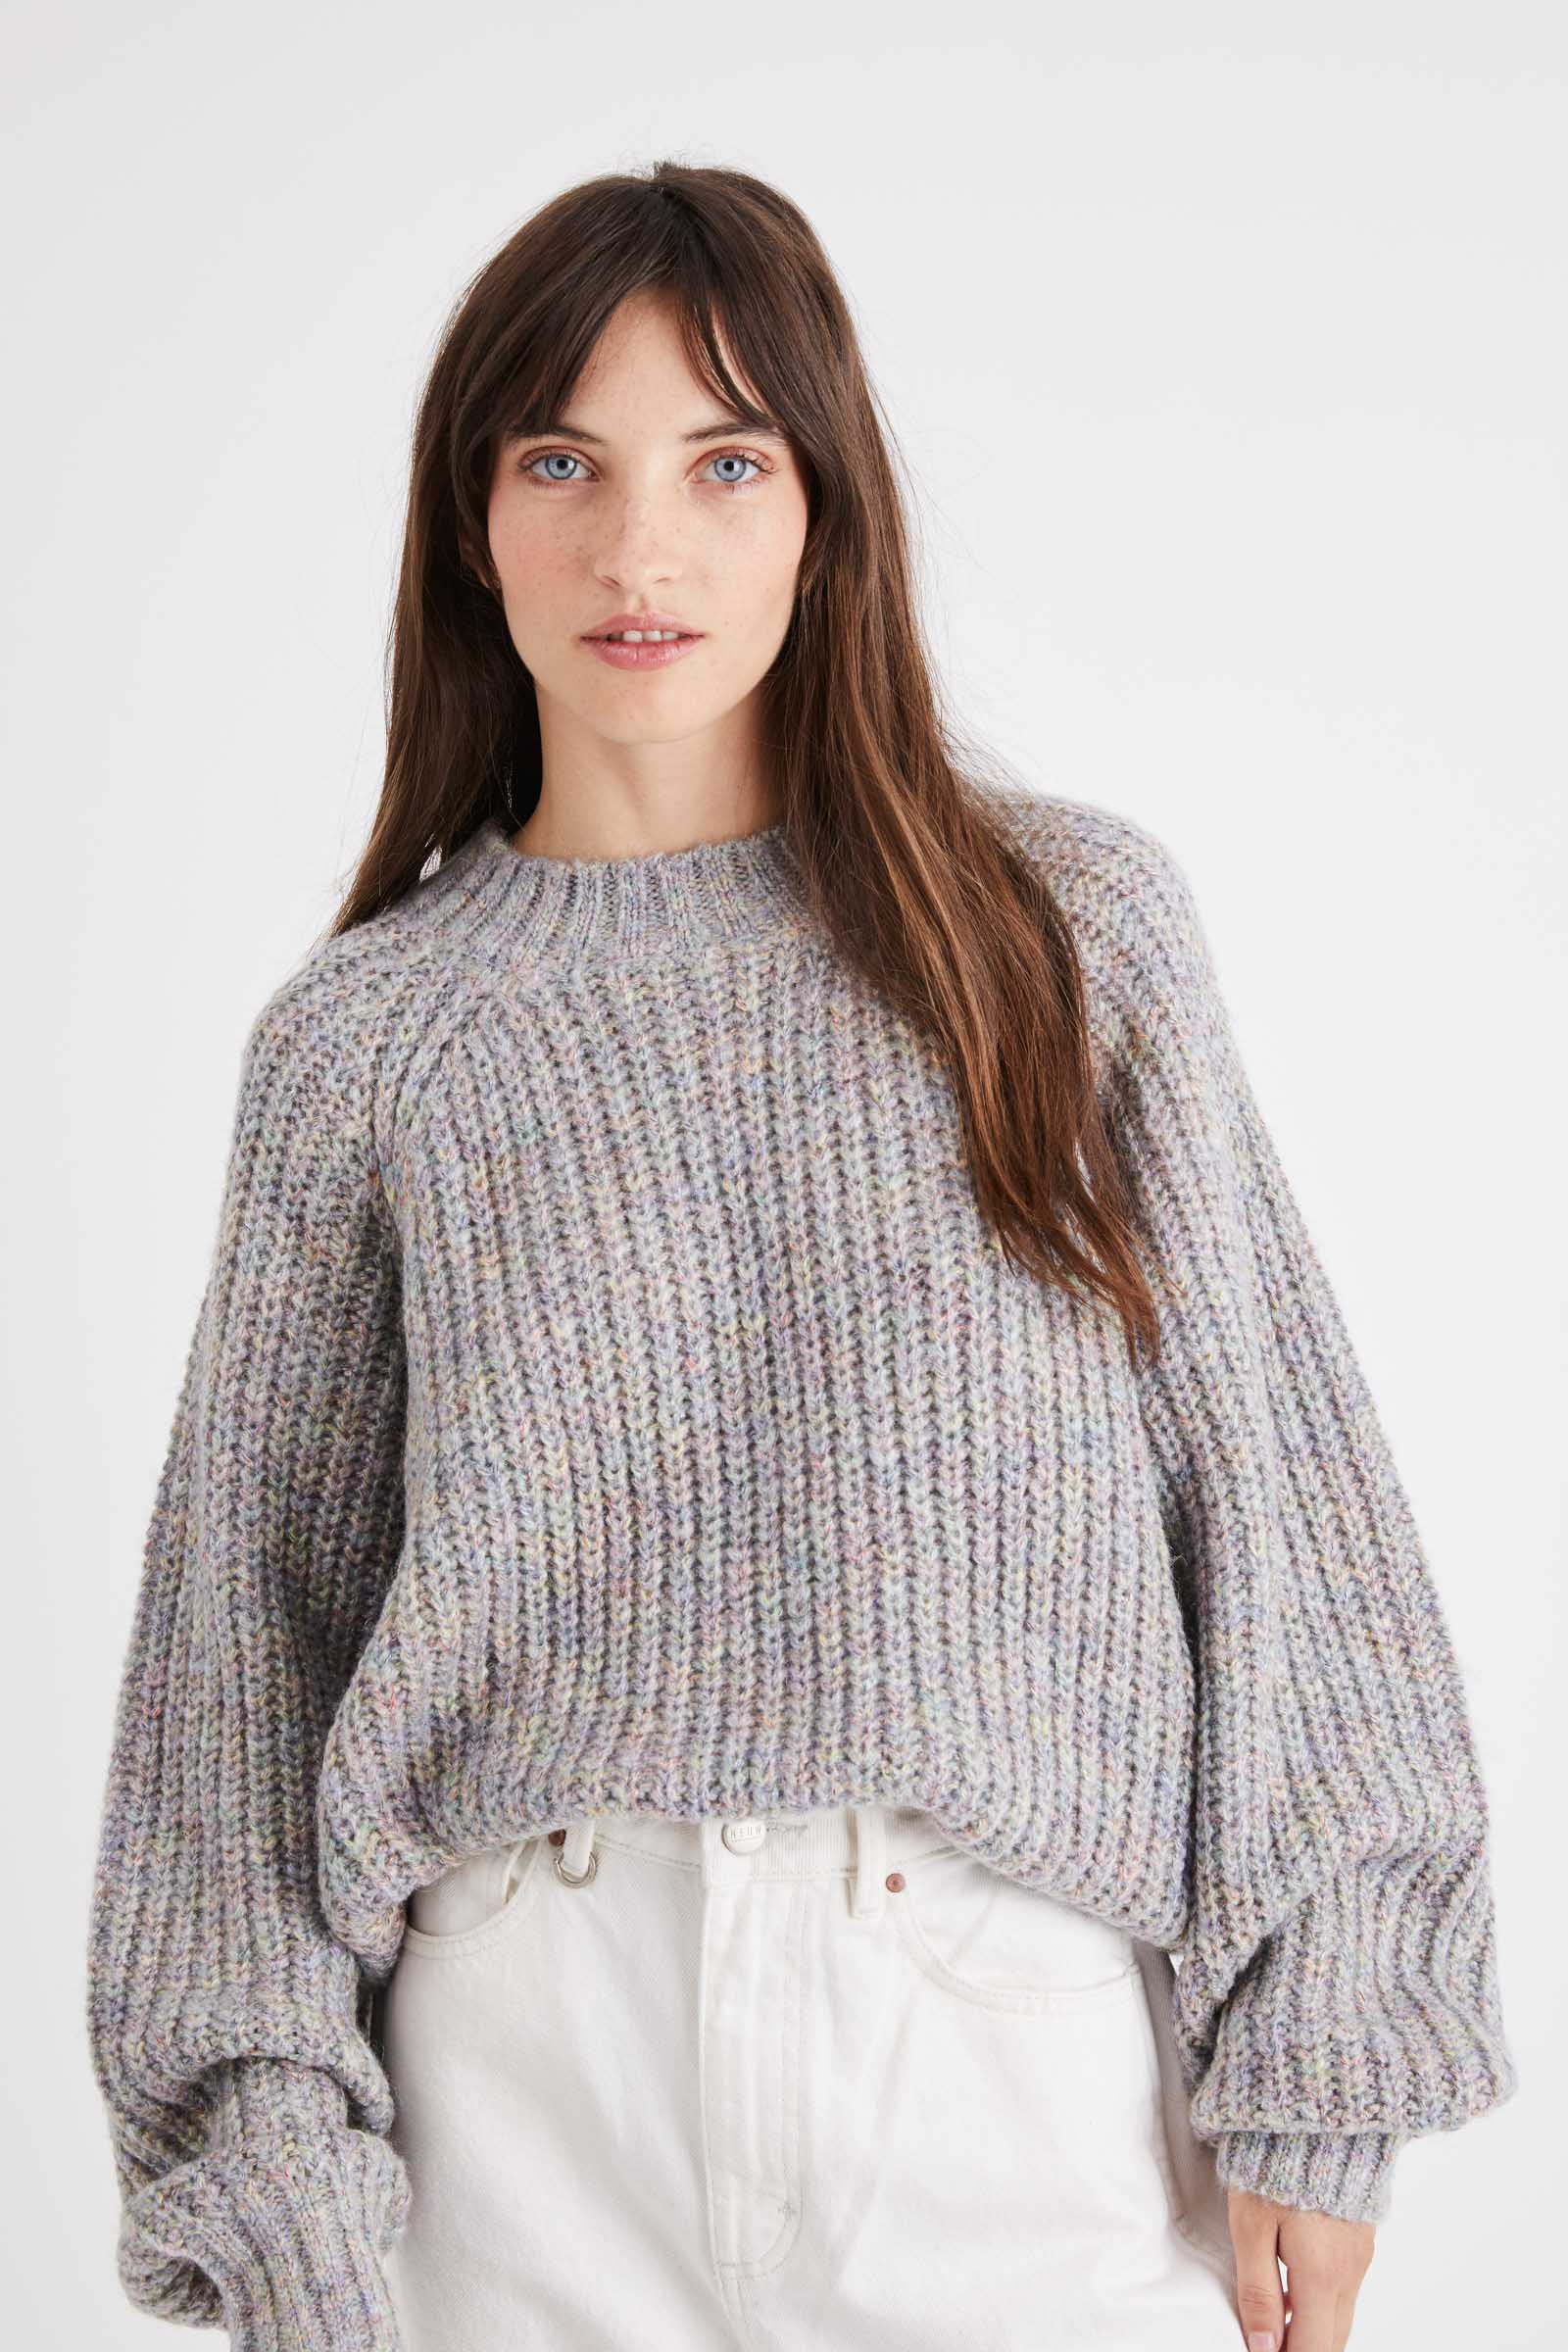 Neuw Denim Spaced Knit - Rainbow